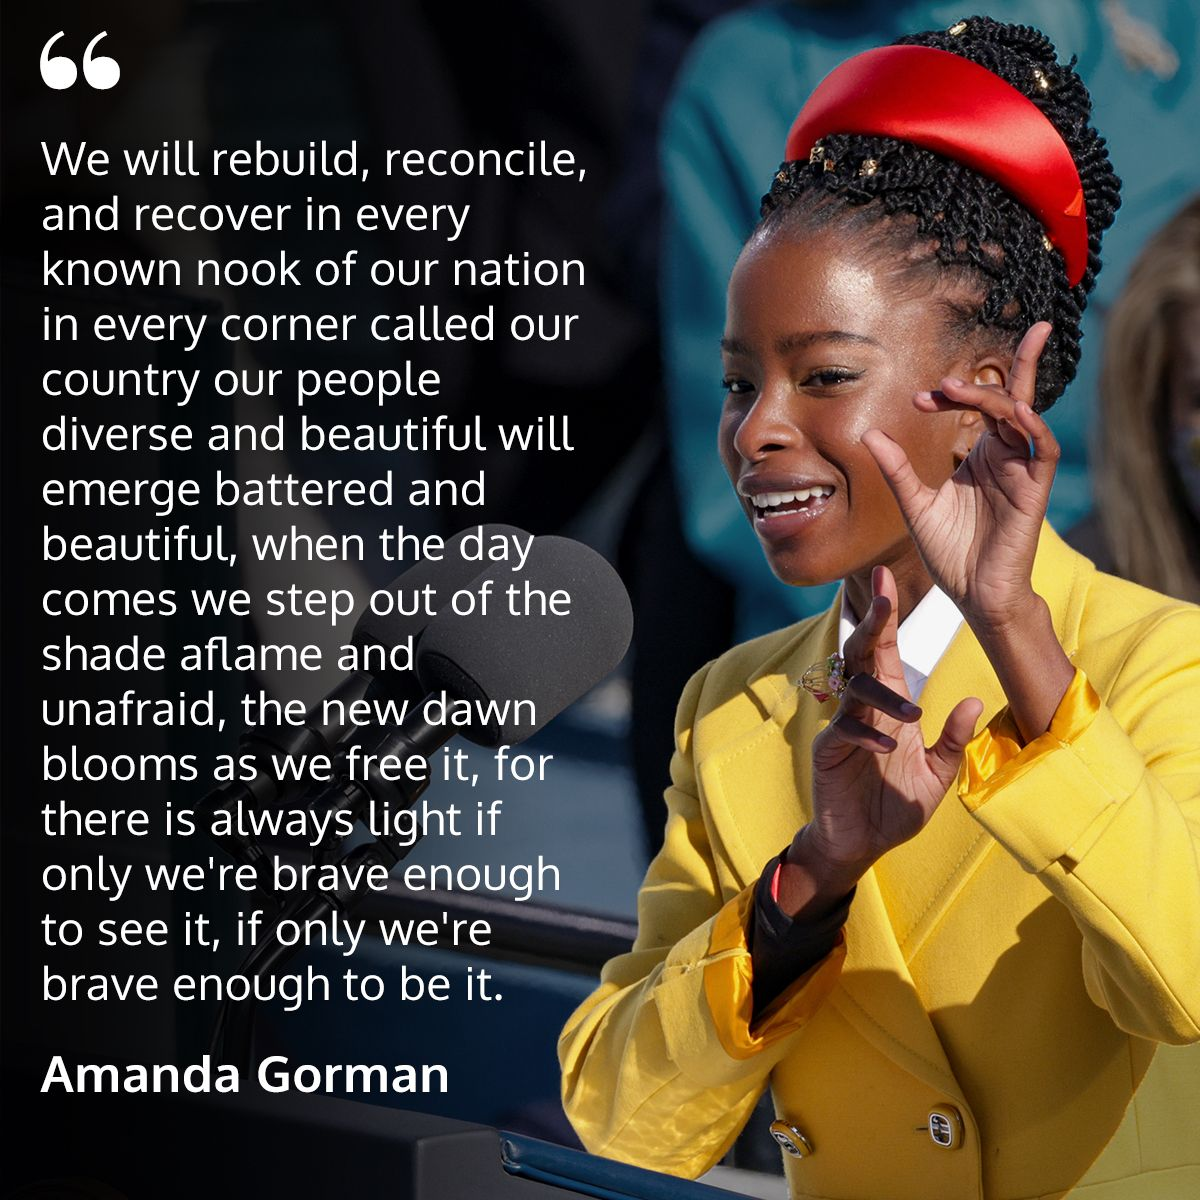 Going into the weekend still thinking about the amazing performance — and poem — by Amanda Gorman. What was your favorite part? 💜